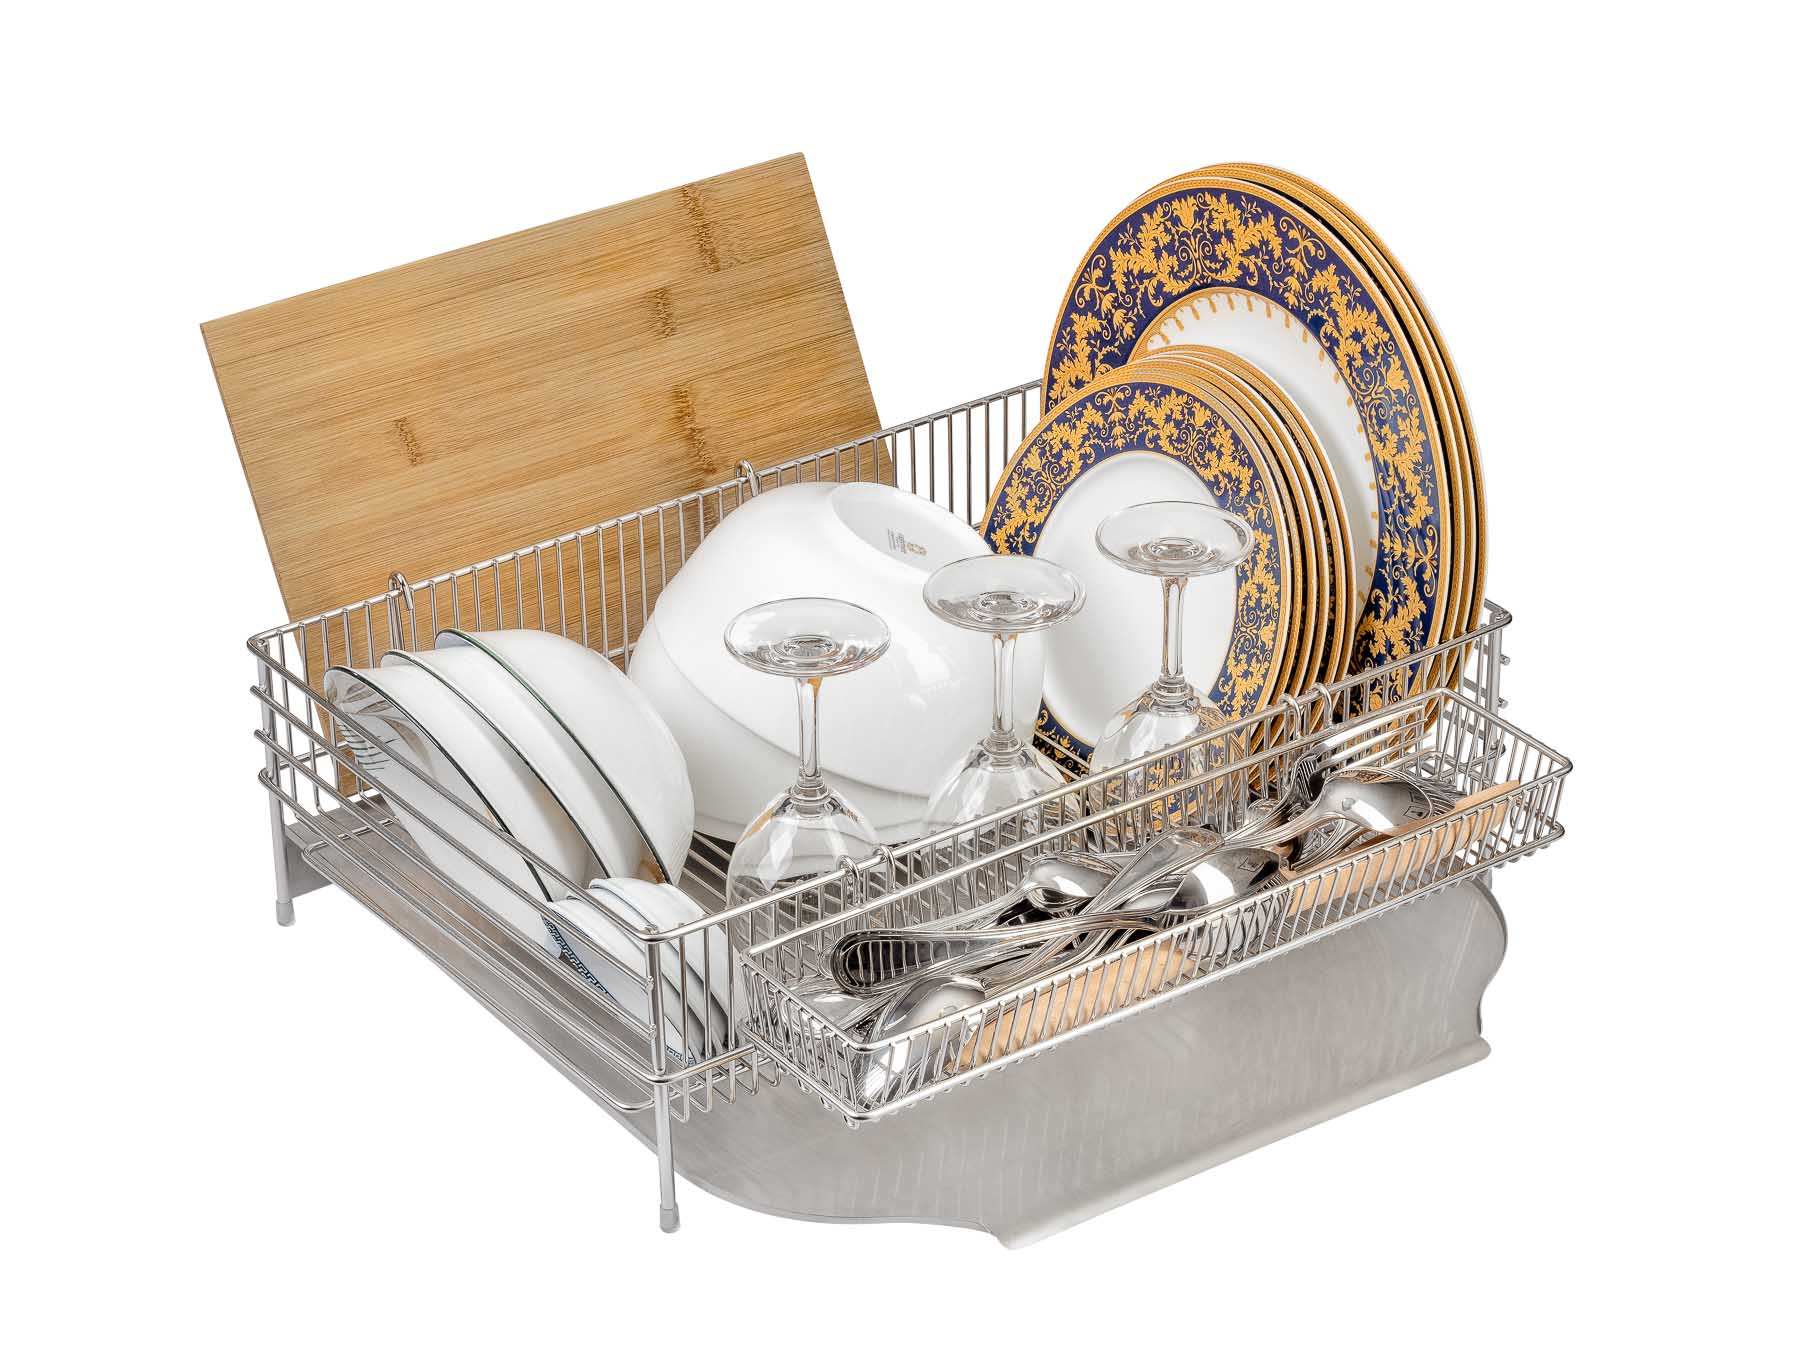 Dish Rack with Plates cups and board - Product photography for Amazon